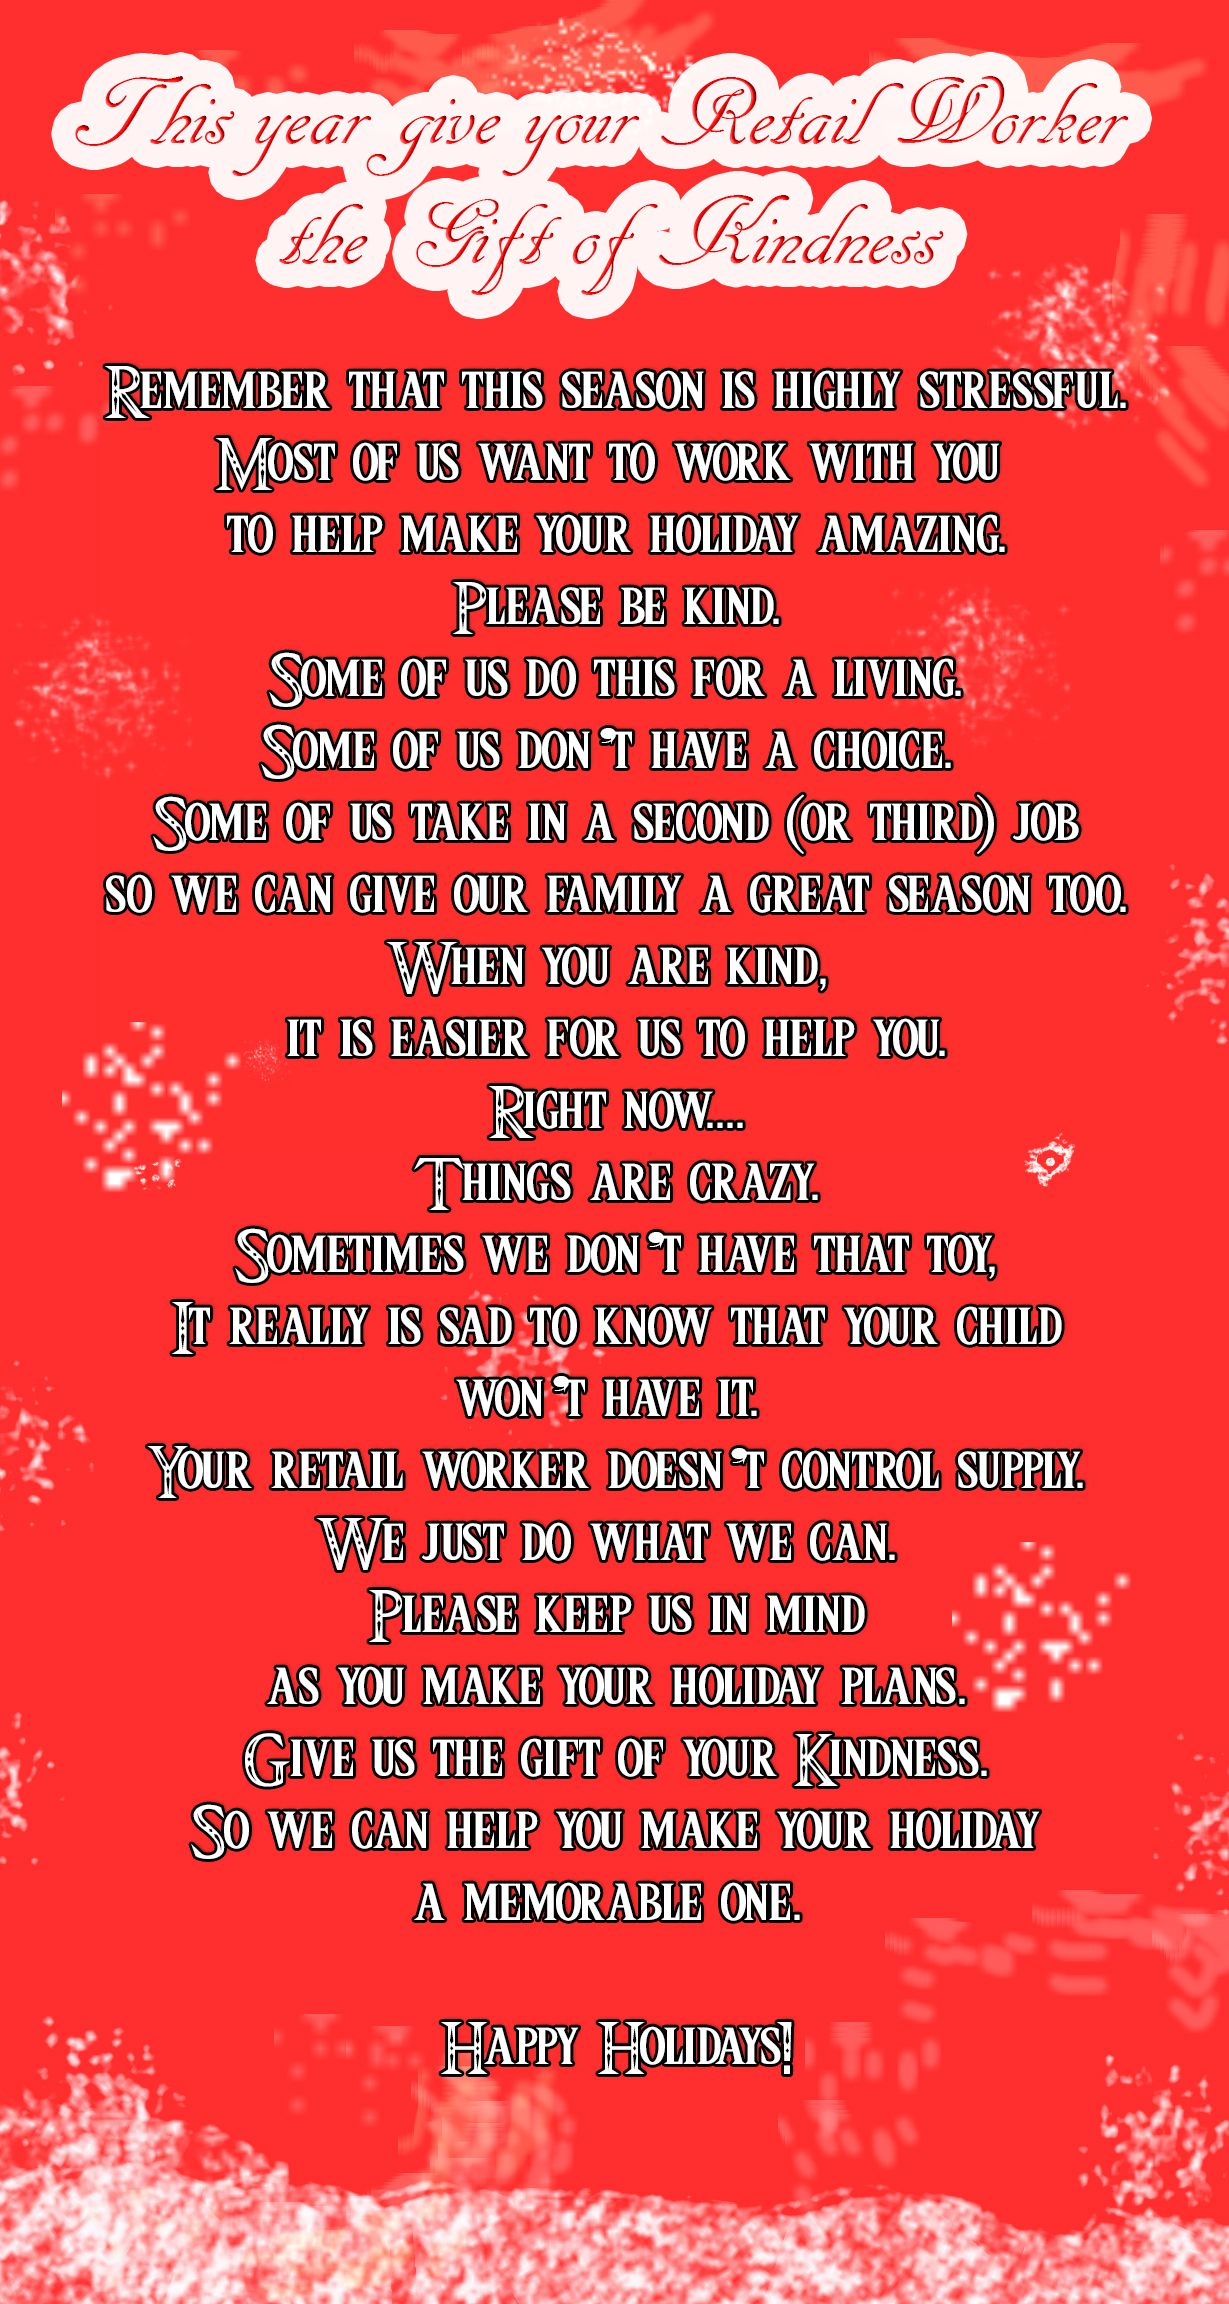 Retail Workers Need Your Kindness This Holiday Season Funny Nurse Quotes Nurse Quotes Holiday Quotes